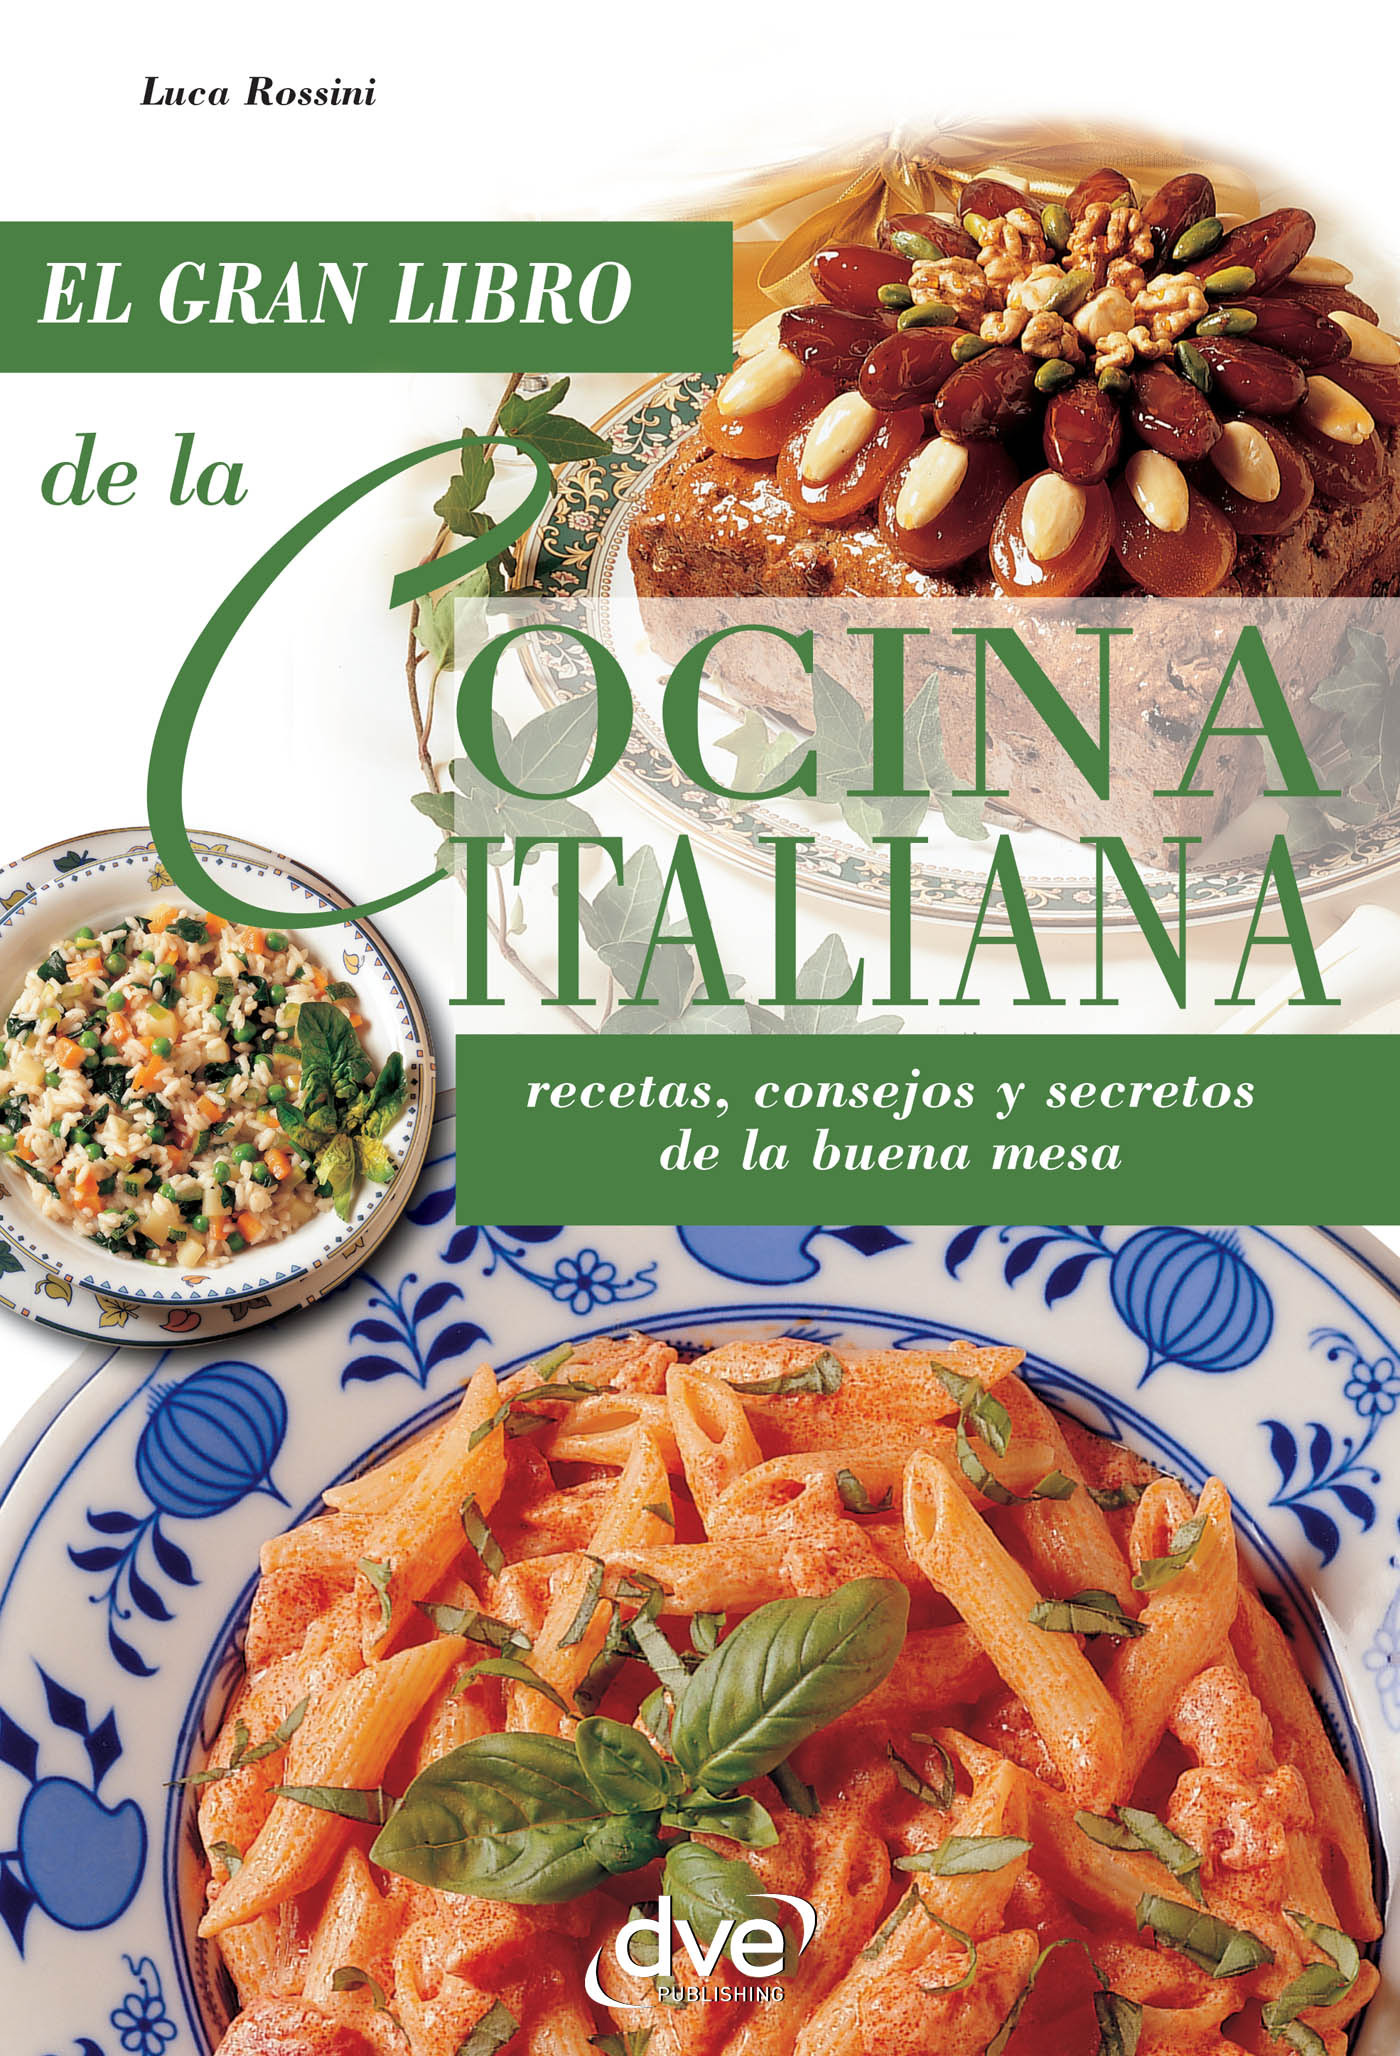 Rossini, Luca - La cocina italiana, ebook